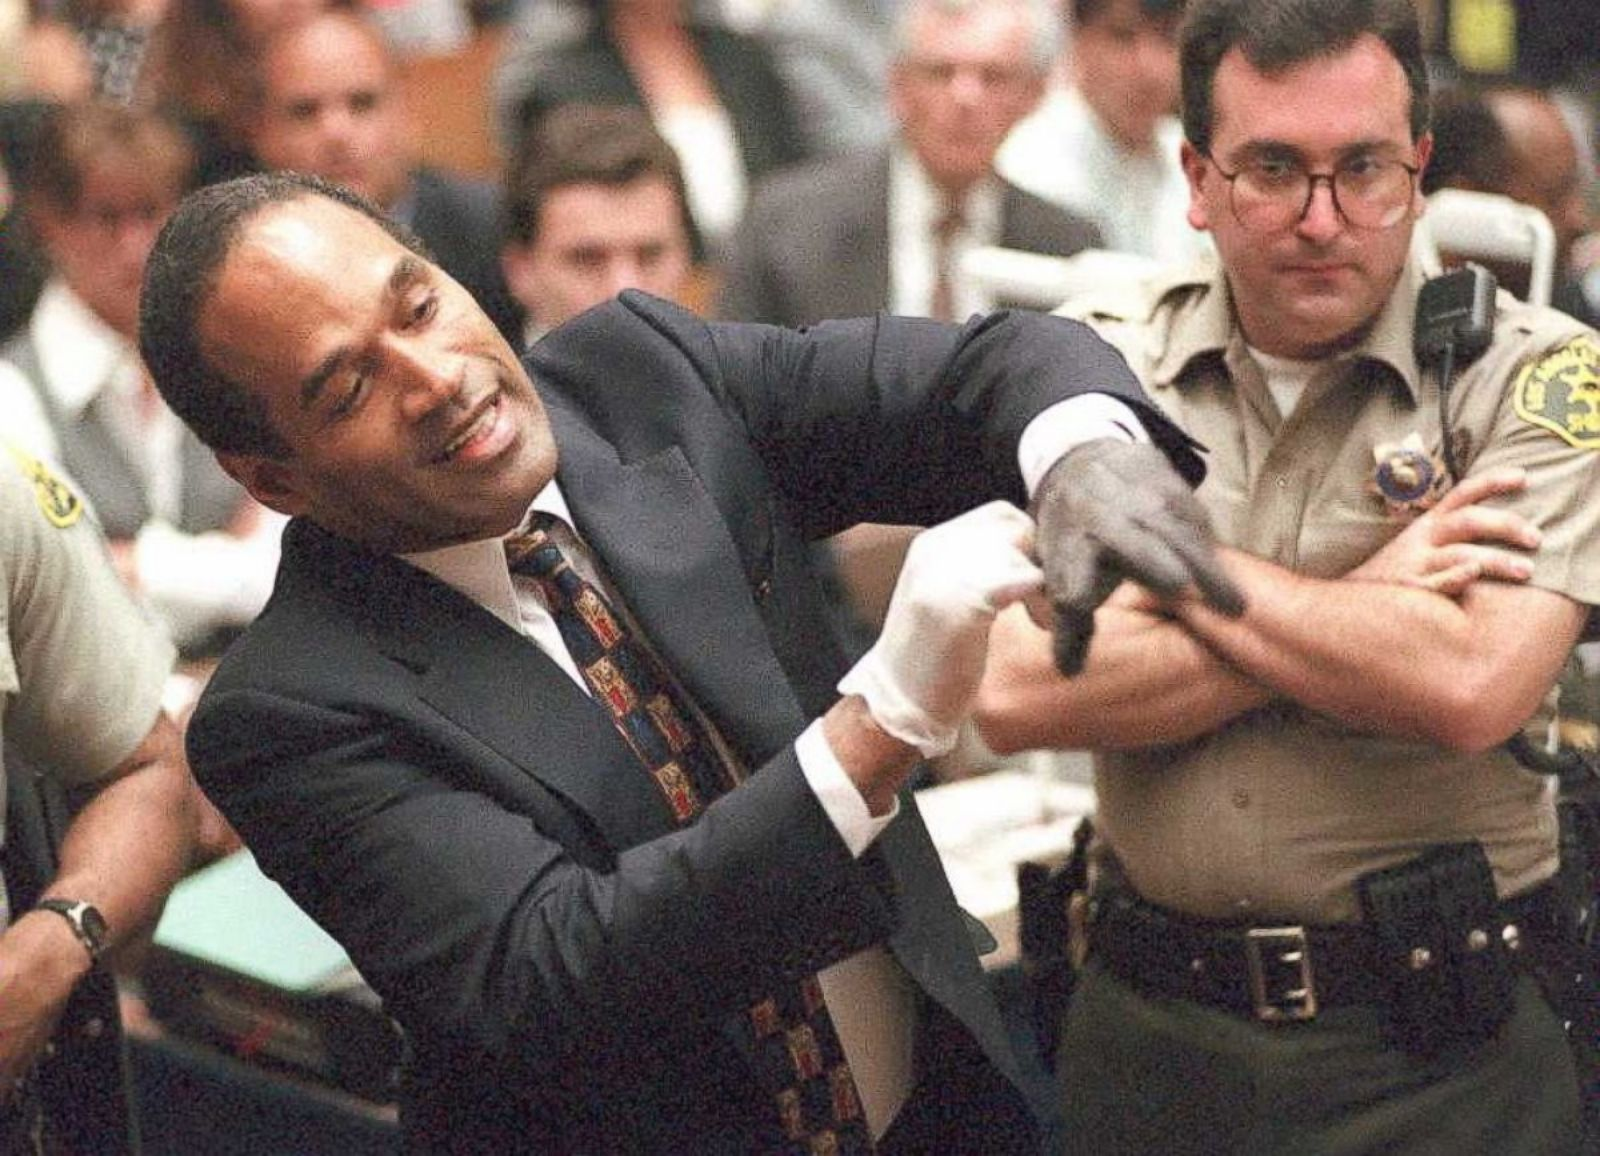 O.J. Simpson Was Acquitted for the Murder of Nicole Brown Simpson on This Day in 1995